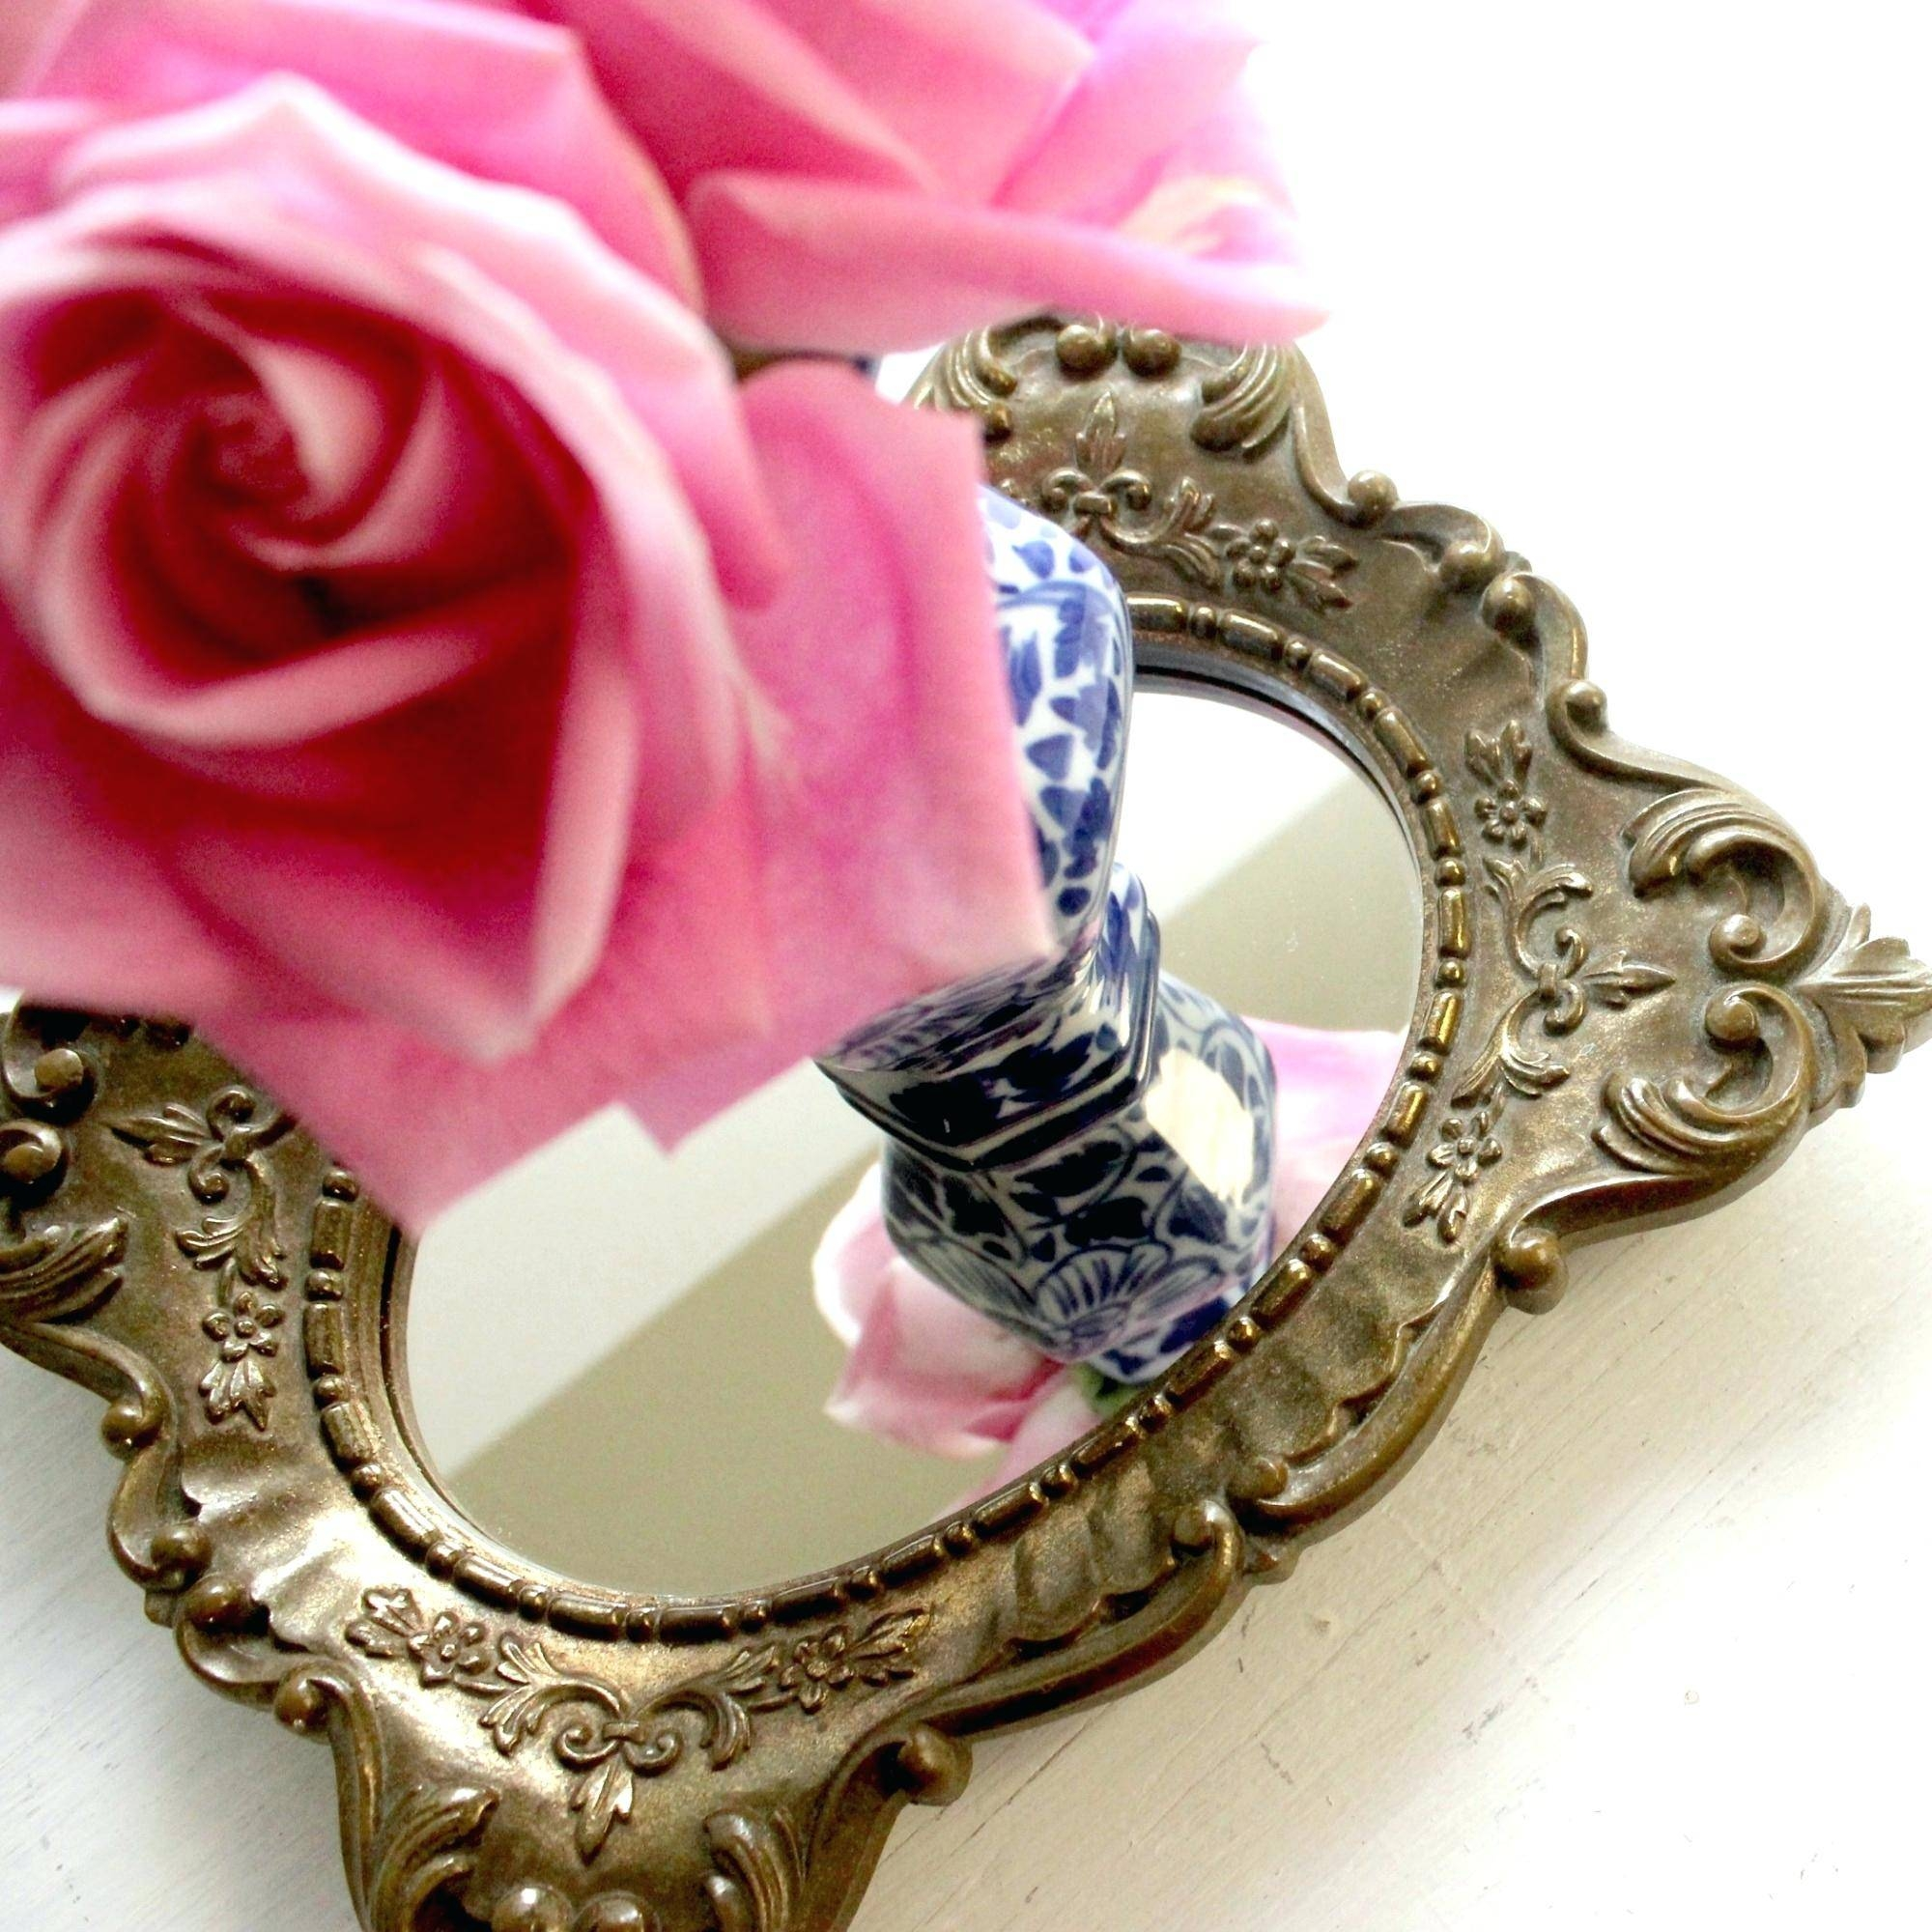 Small Ornate Mirror – Shopwiz intended for Small Ornate Mirrors (Image 22 of 25)